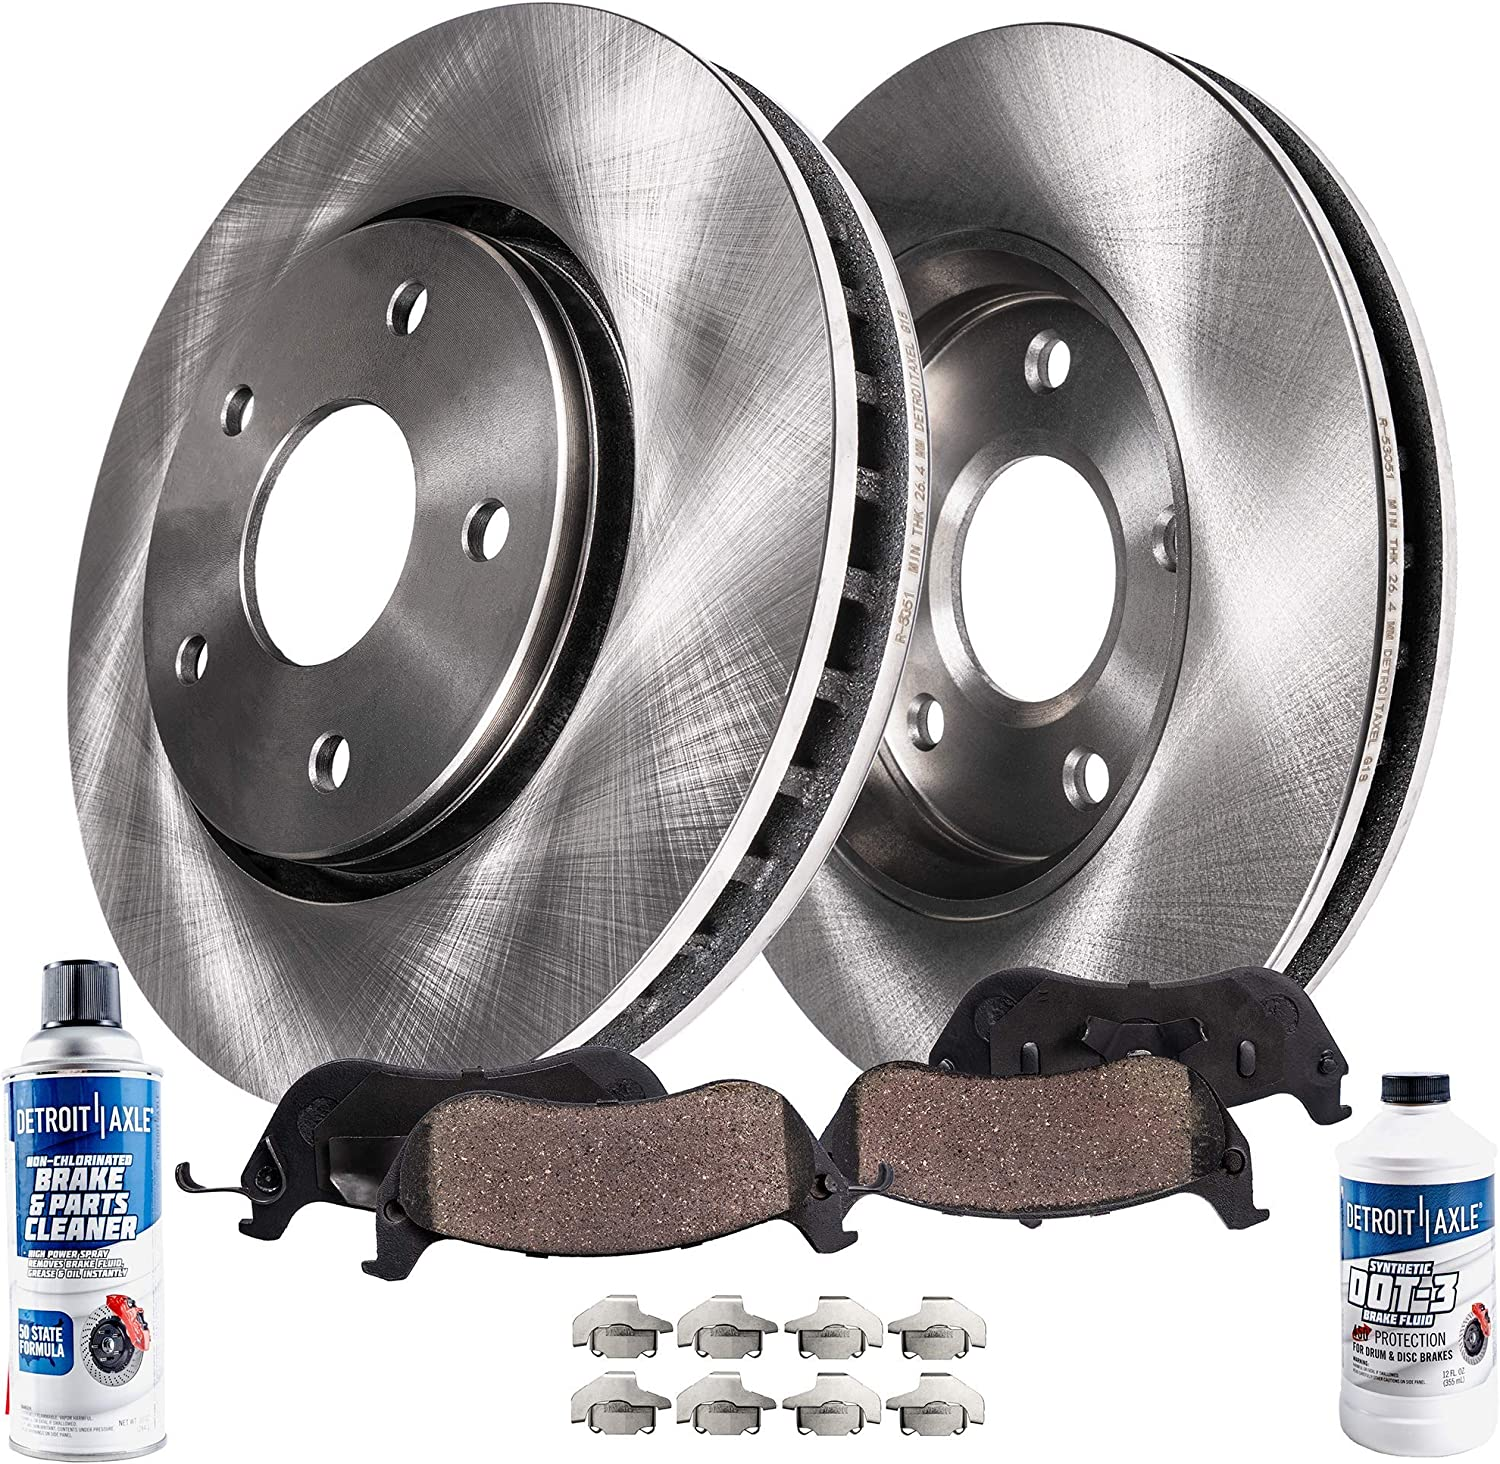 Drilled /& Slotted Front Brake Rotors /& Ceramic Pads w//Clips Hardware Kit for 2004 2005 2006 2007 2008 2009 Toyota Prius Detroit Axle